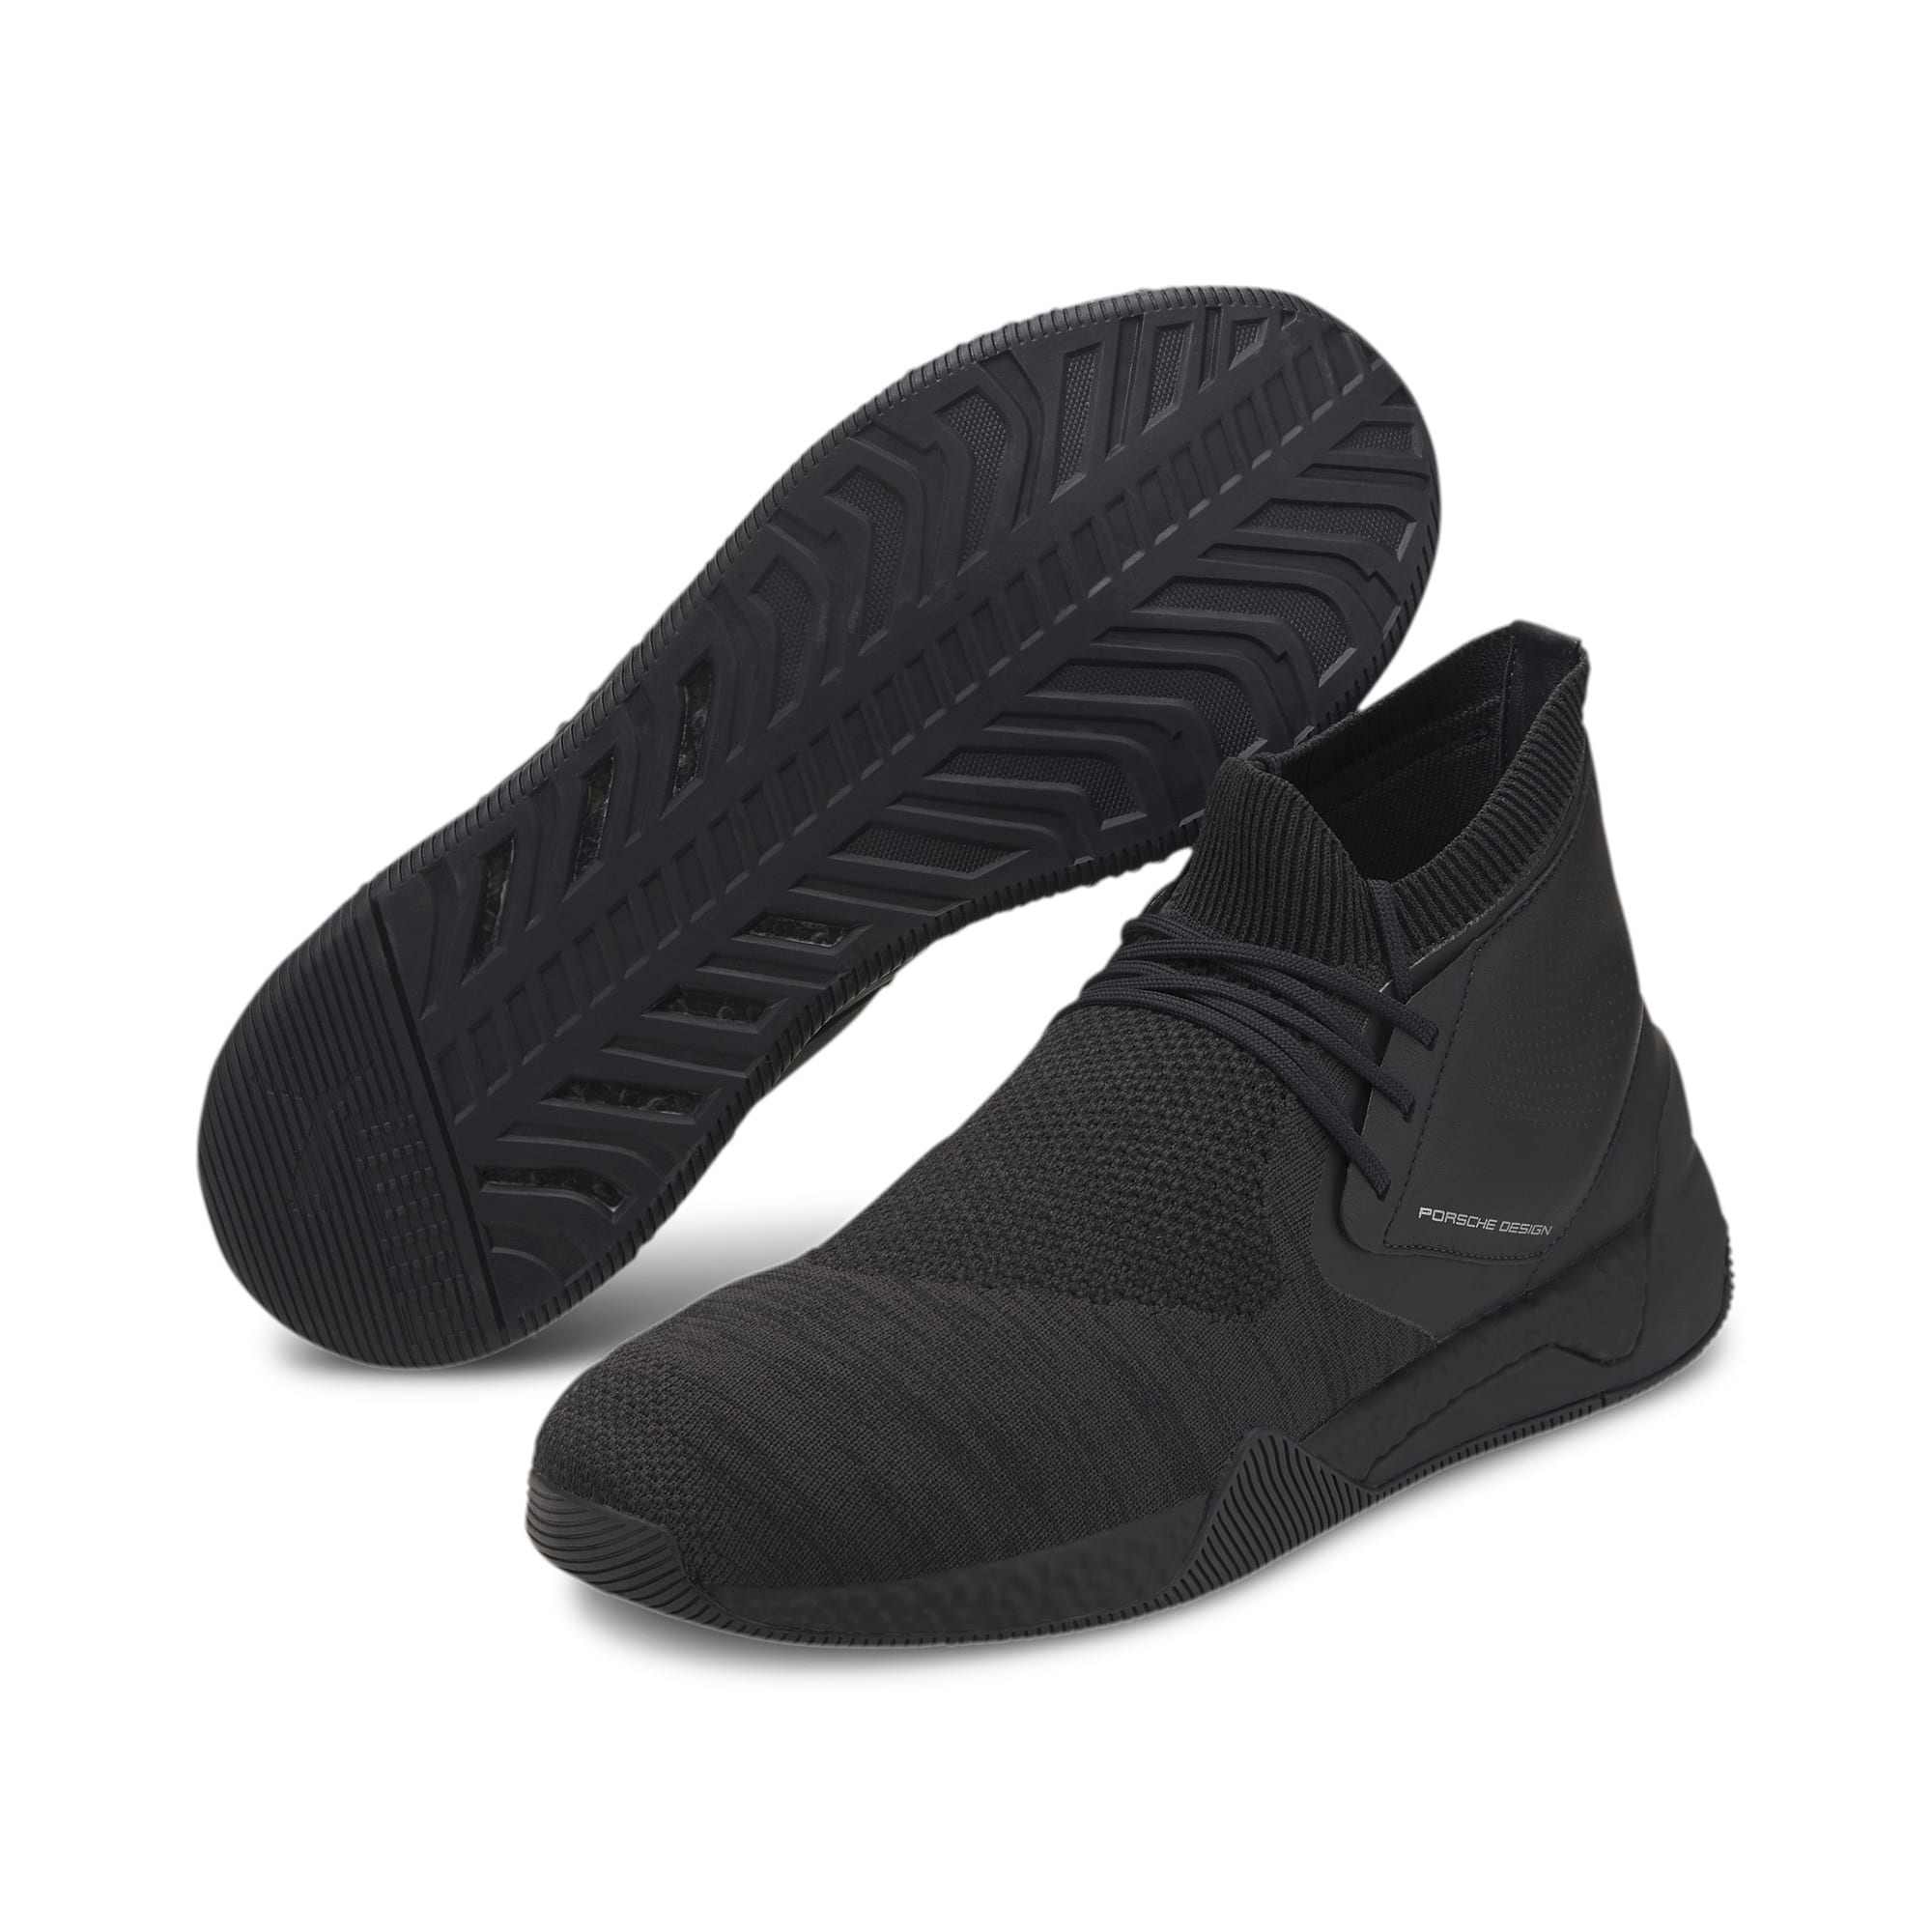 Thumbnail 3 of Porsche Design Hybrid evoKNIT Men's Trainers, Jet Black-Jet Black-JetBlack, medium